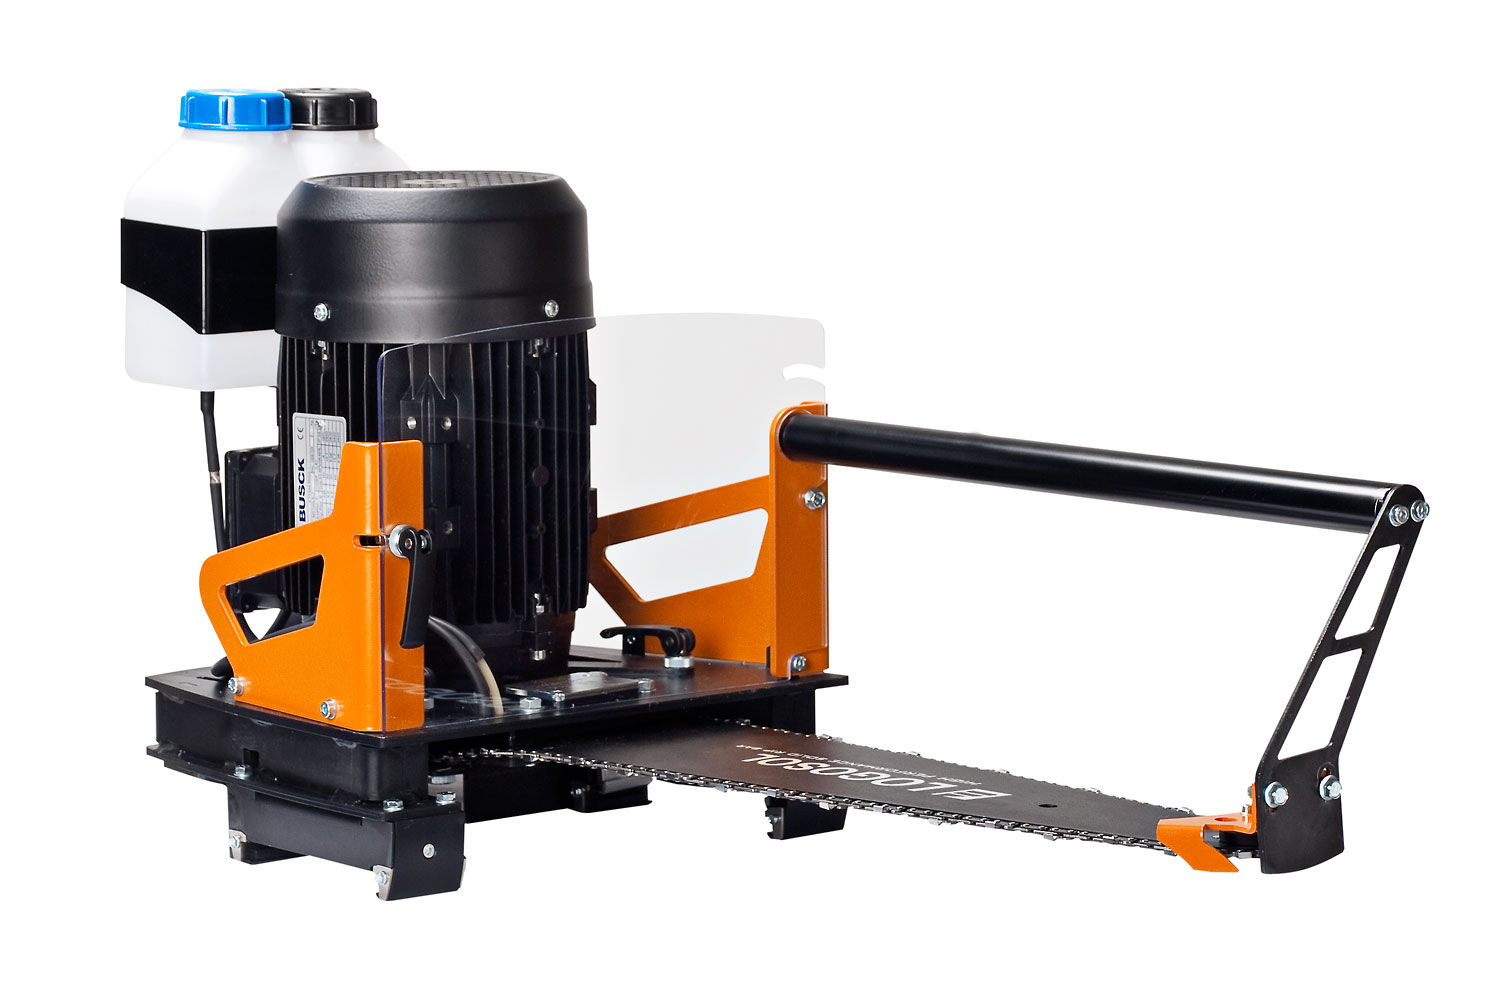 Sierra el ctrica speed saw e8 tienda forestal greenforest - Sierra electrica para madera ...